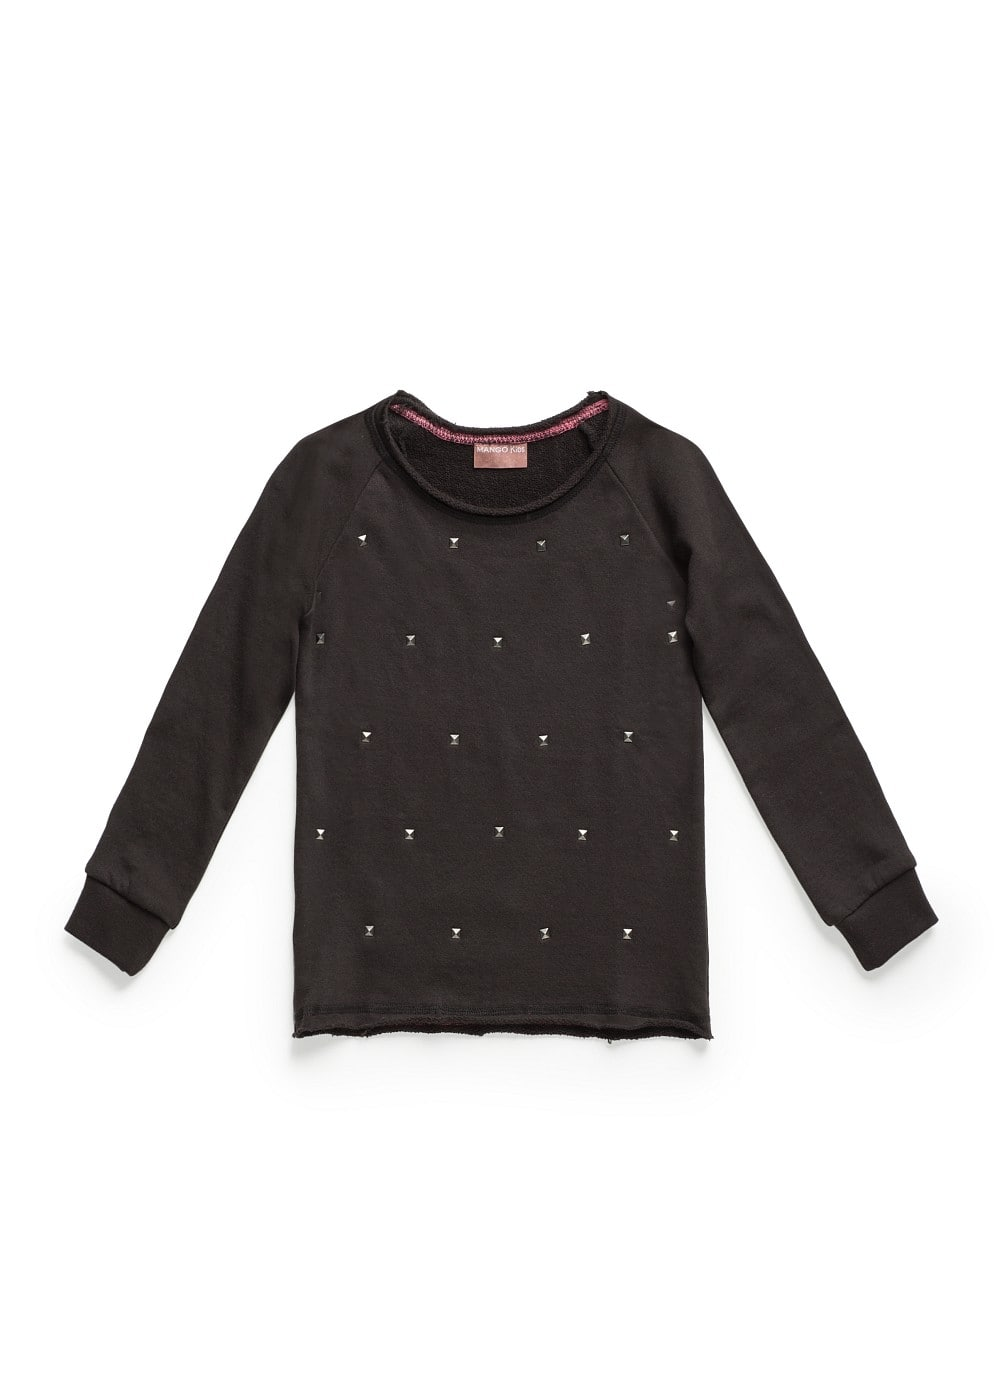 STUDDED SWEATSHIRT